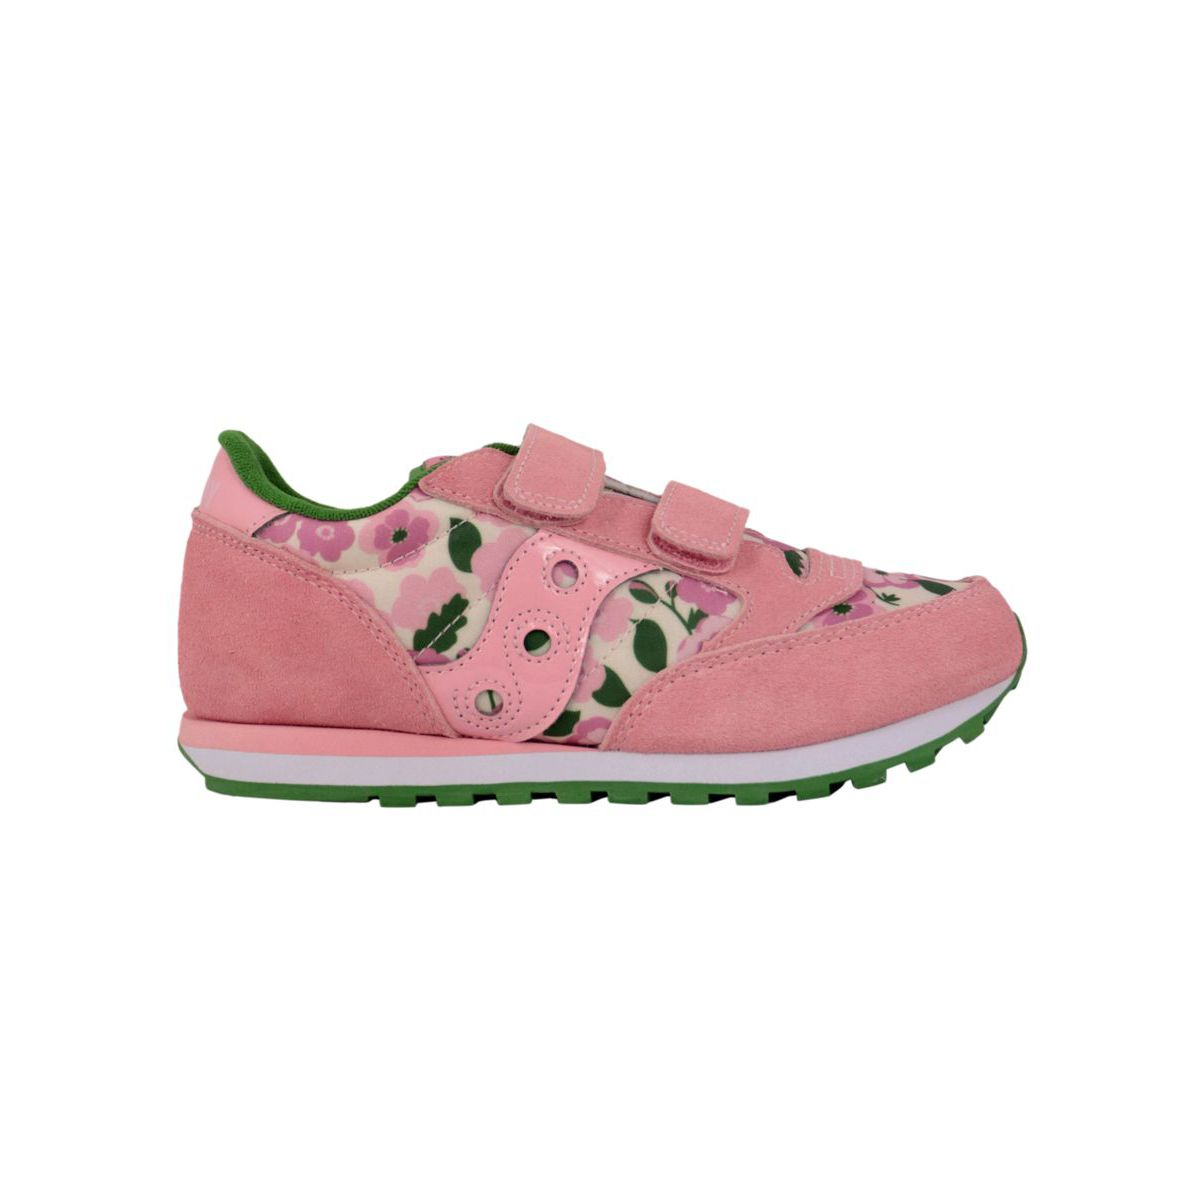 Jazz double hl sneakers Pink floral Saucony